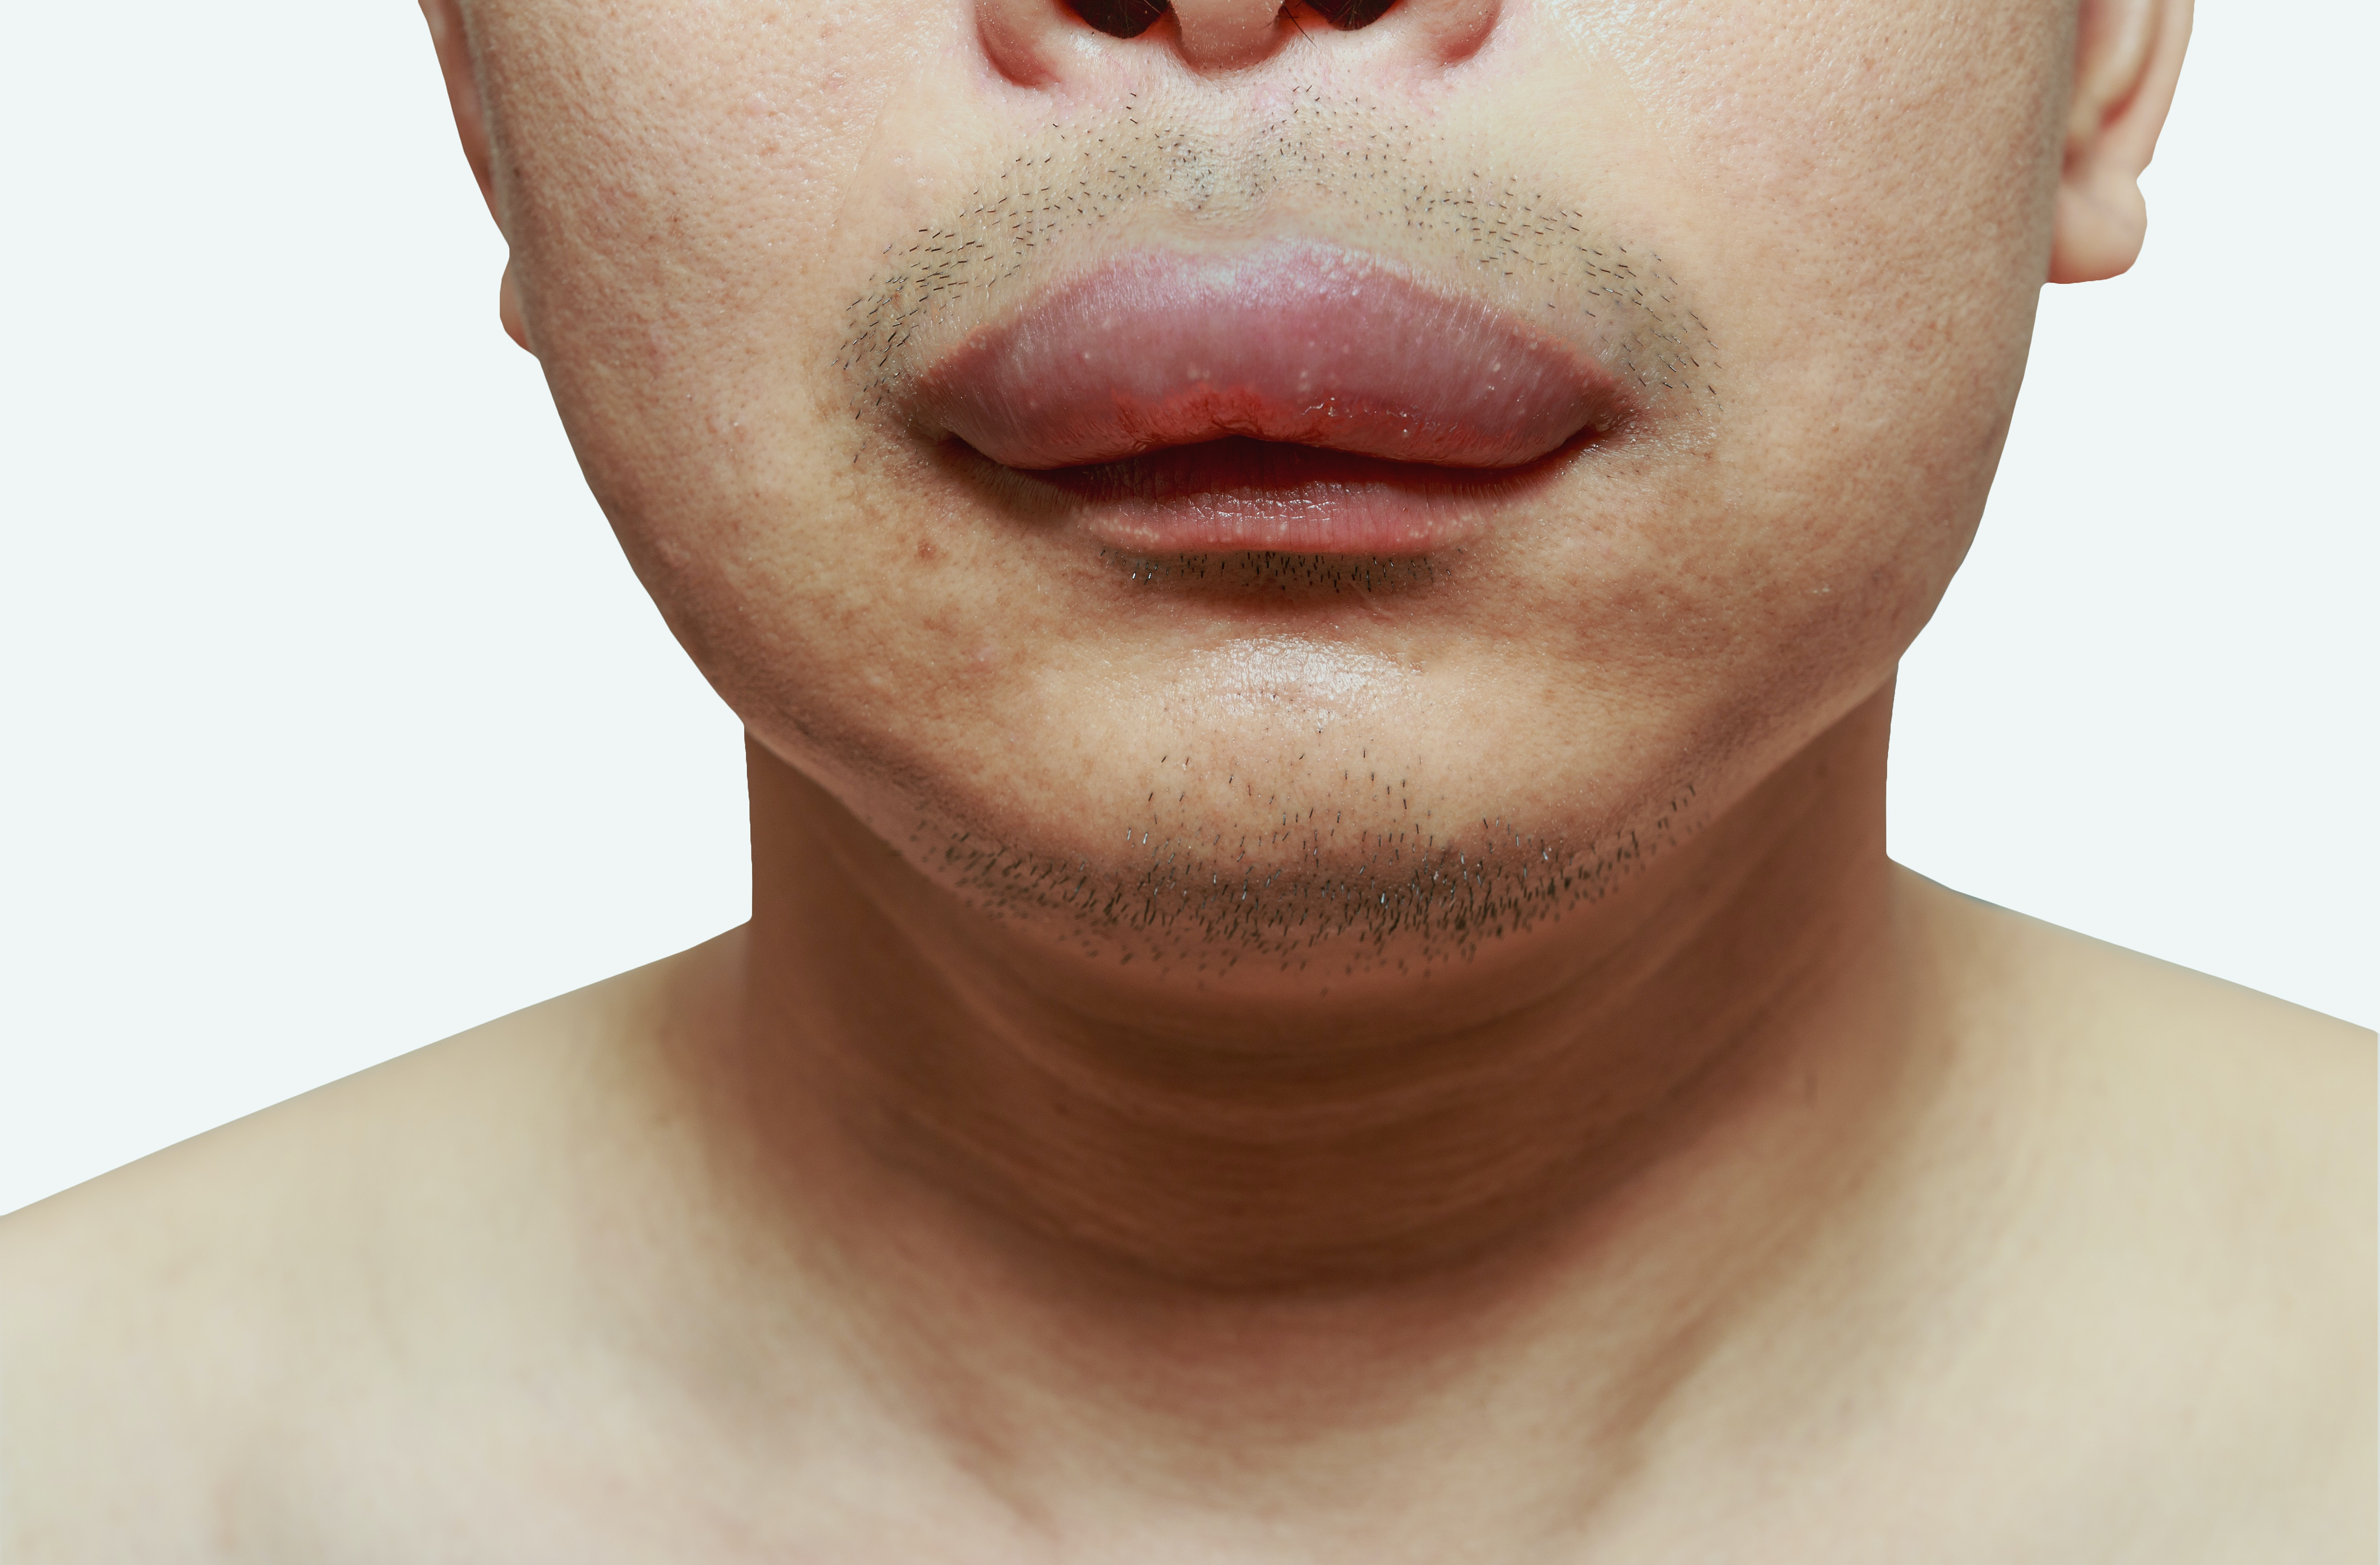 An image depicting a person suffering from swollen mouth symptoms